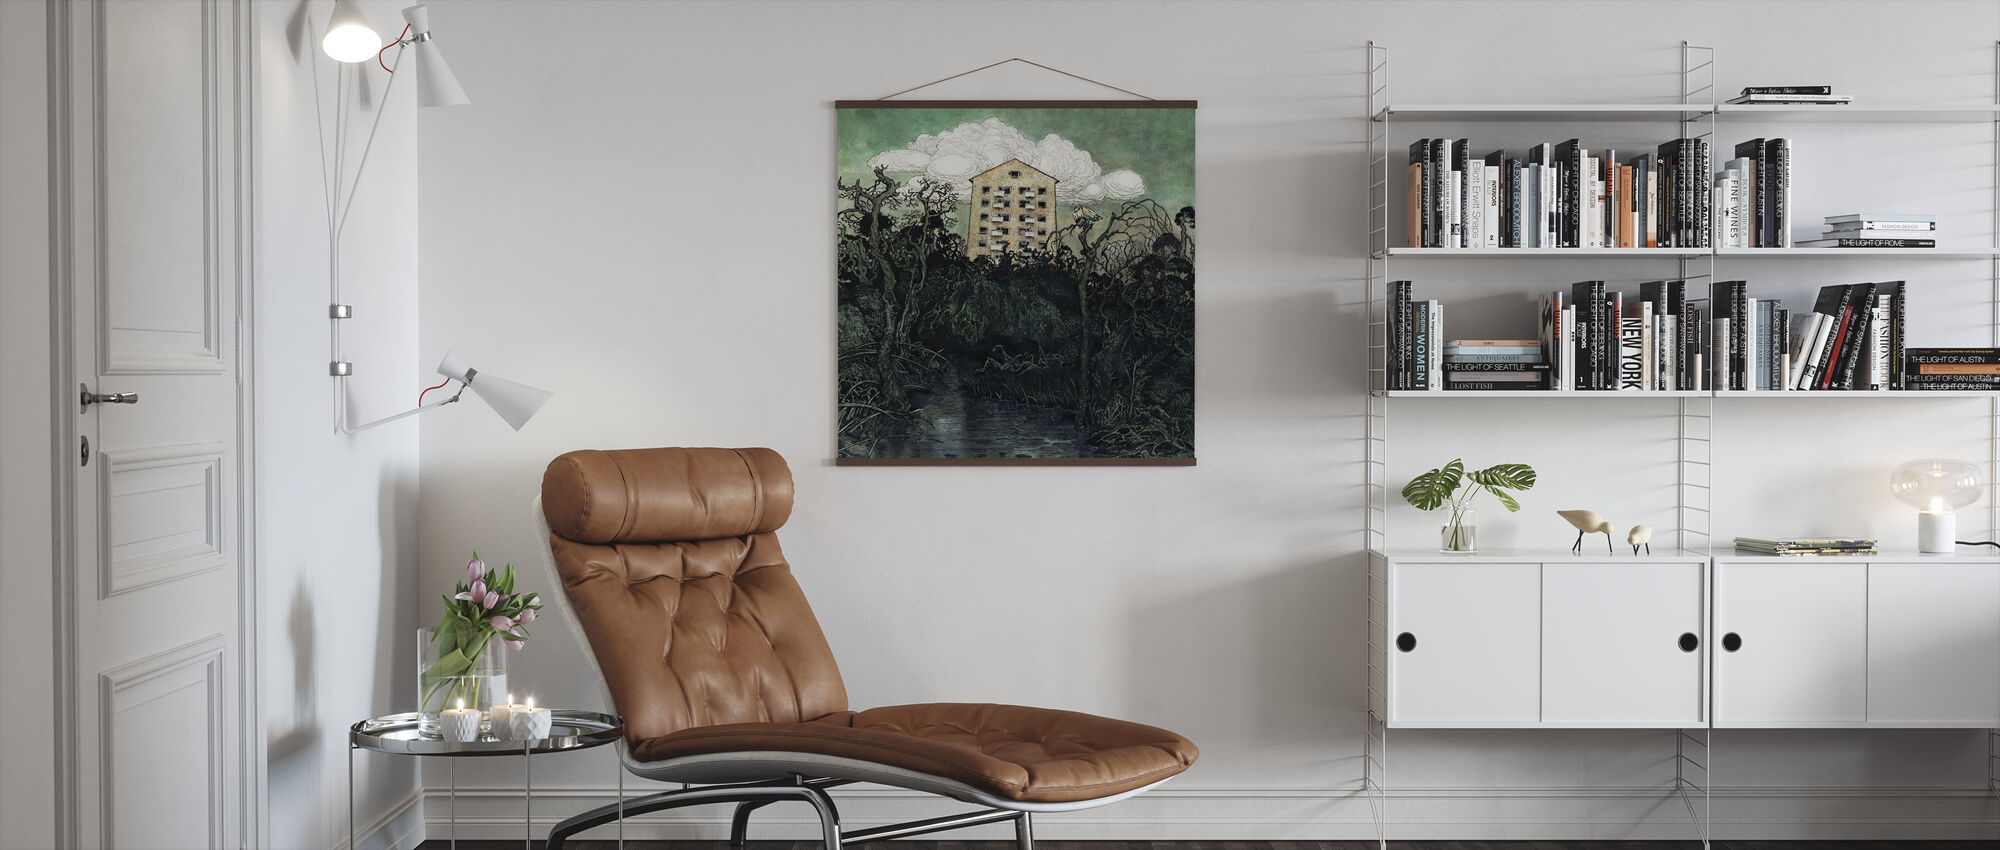 Tower Owl - Poster - Living Room